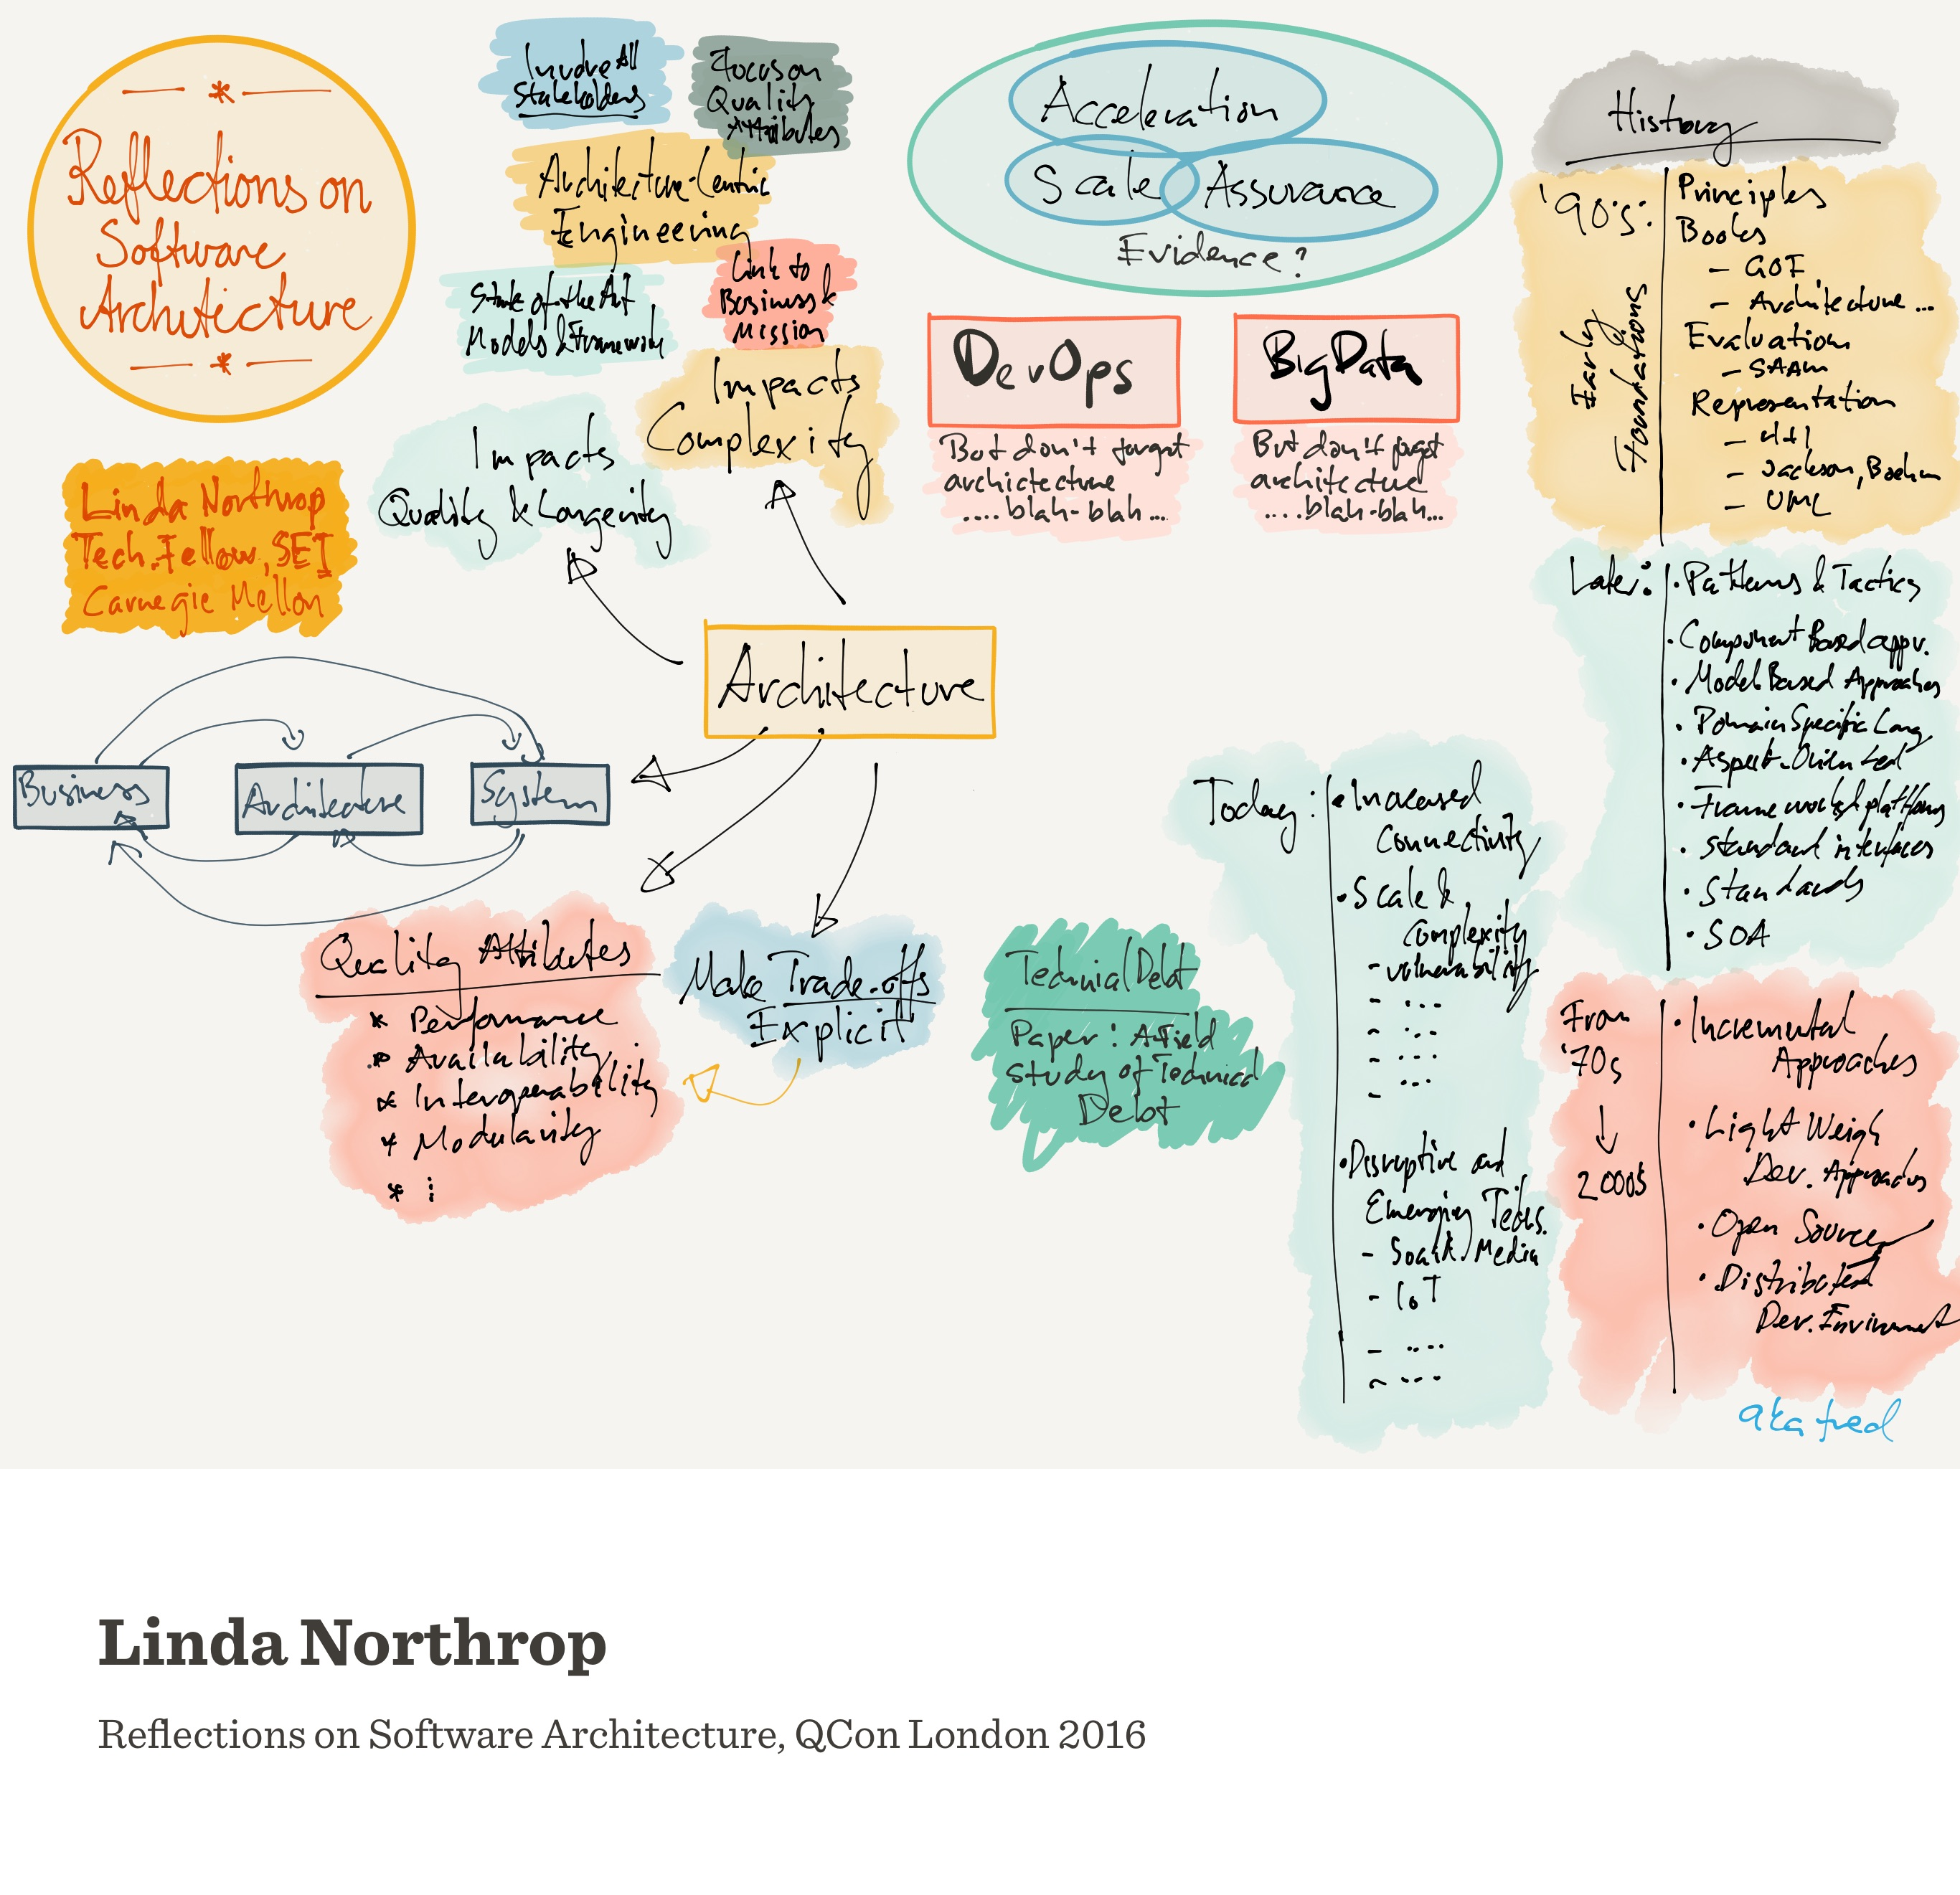 Notes from Reflections on Software Architecture (Linda Northrop)